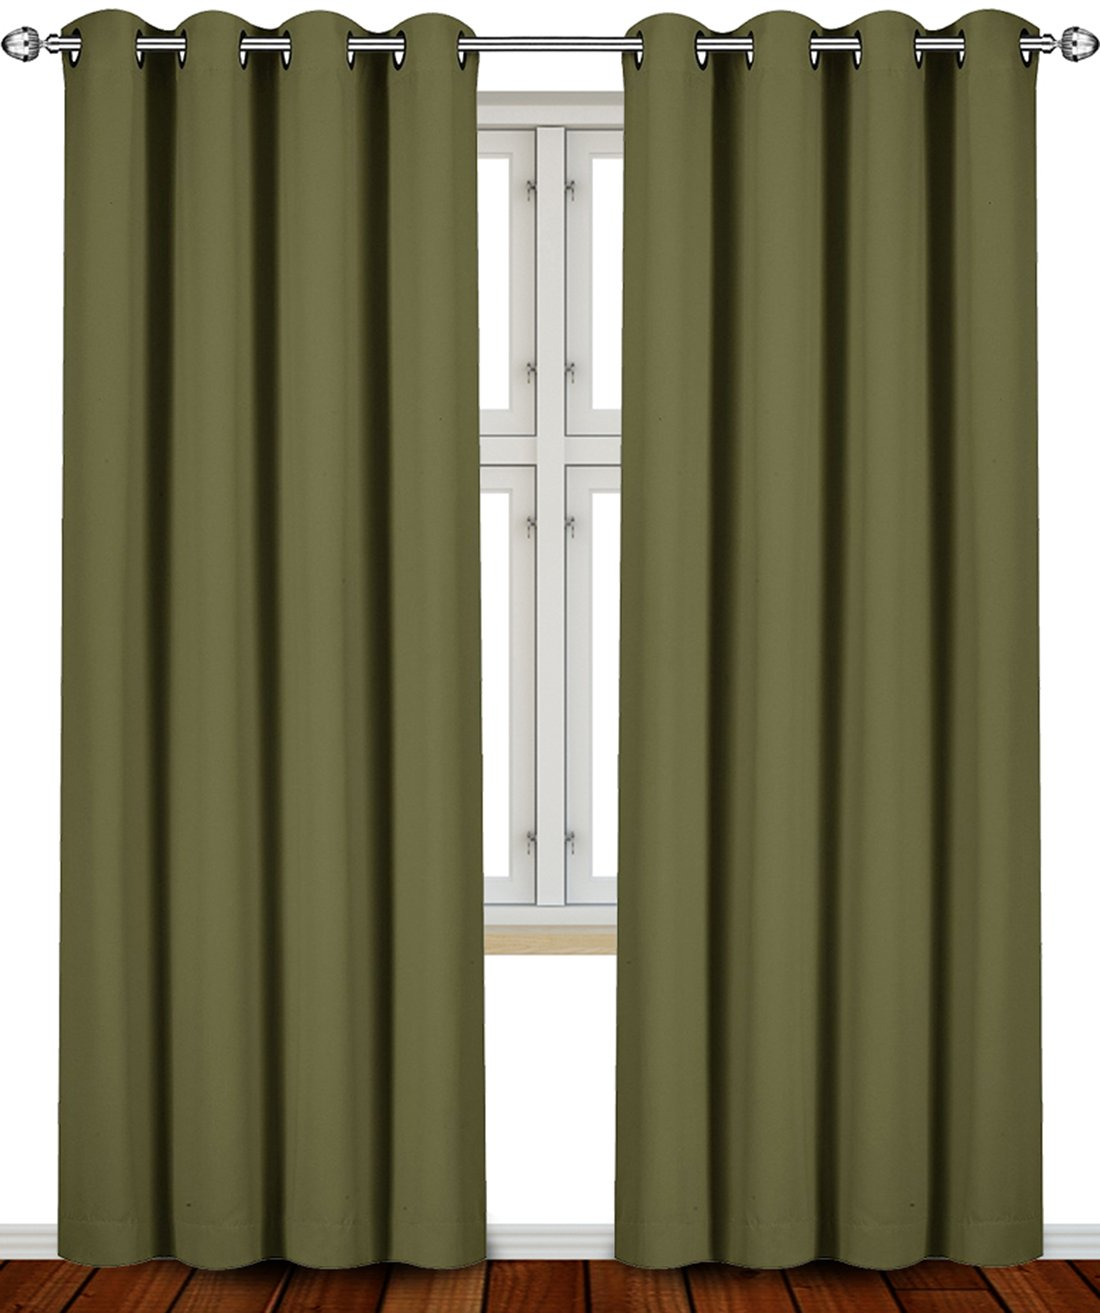 Blackout, Room Darkening Curtains Window Panel Drapes Olive Color